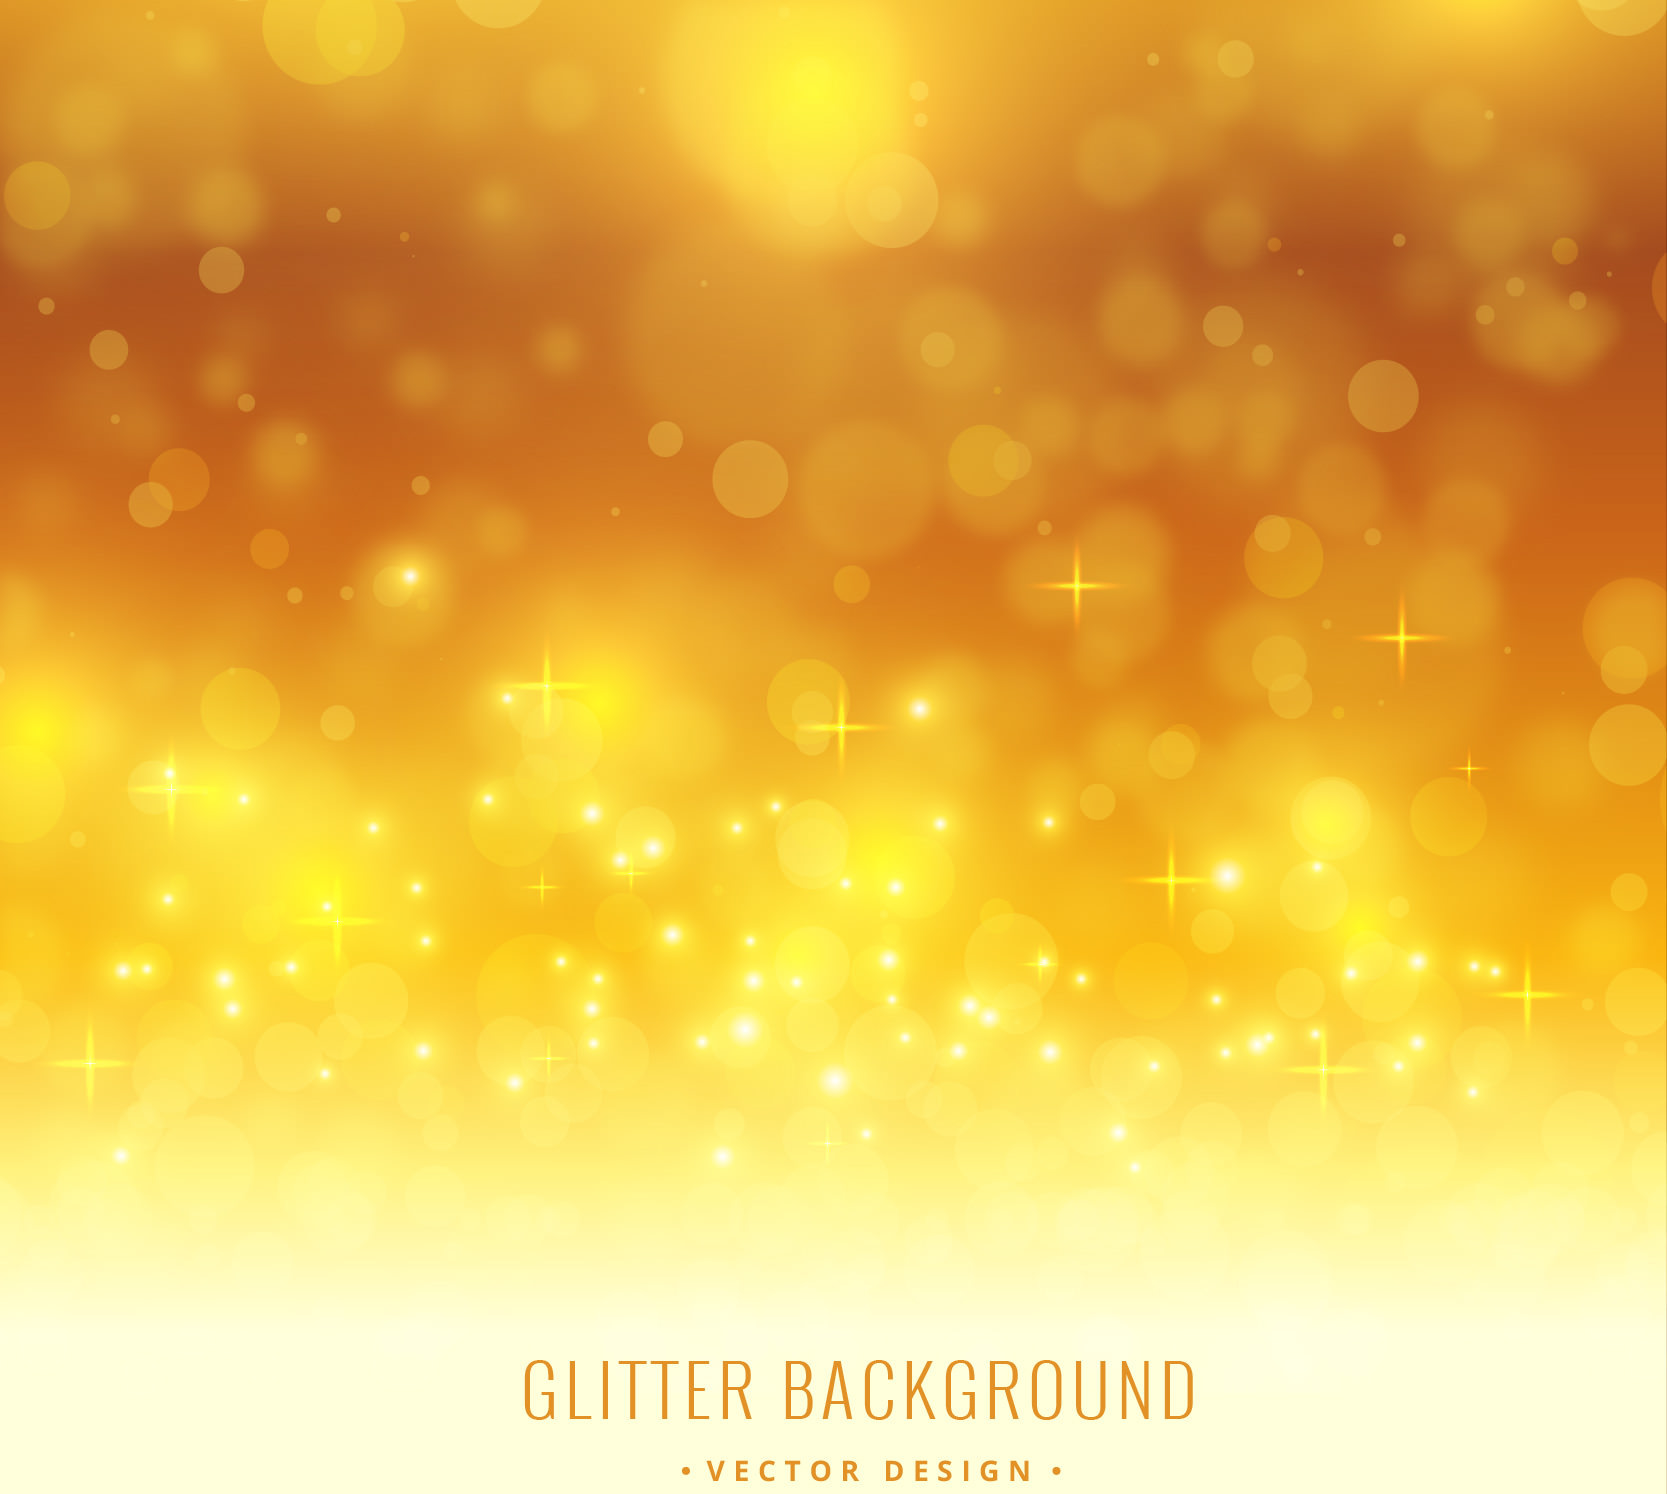 Free Vector Yellow Glitter Background